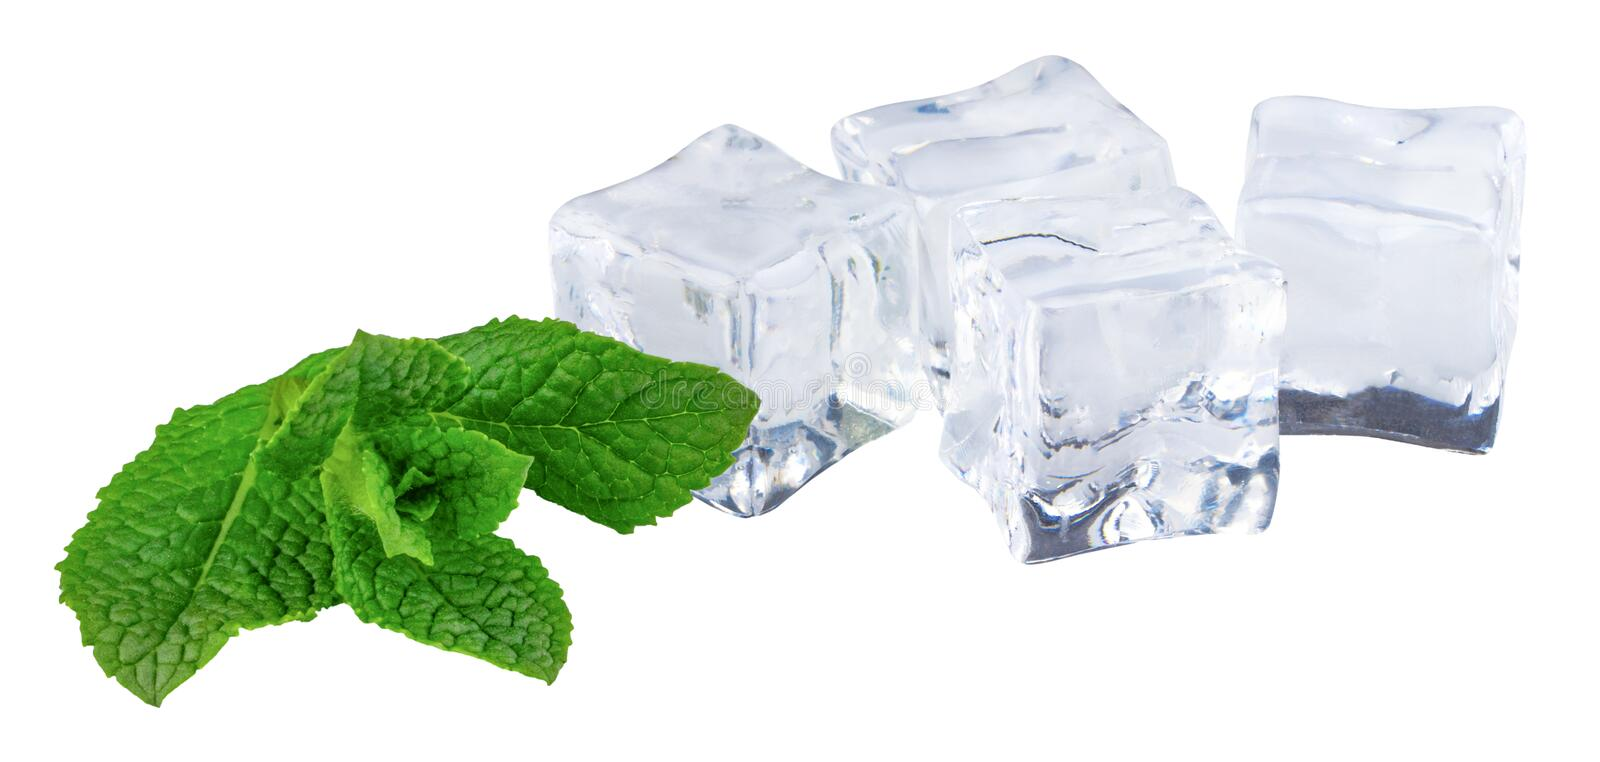 Ice cube with mint leaves isolated on white background.  royalty free stock photos